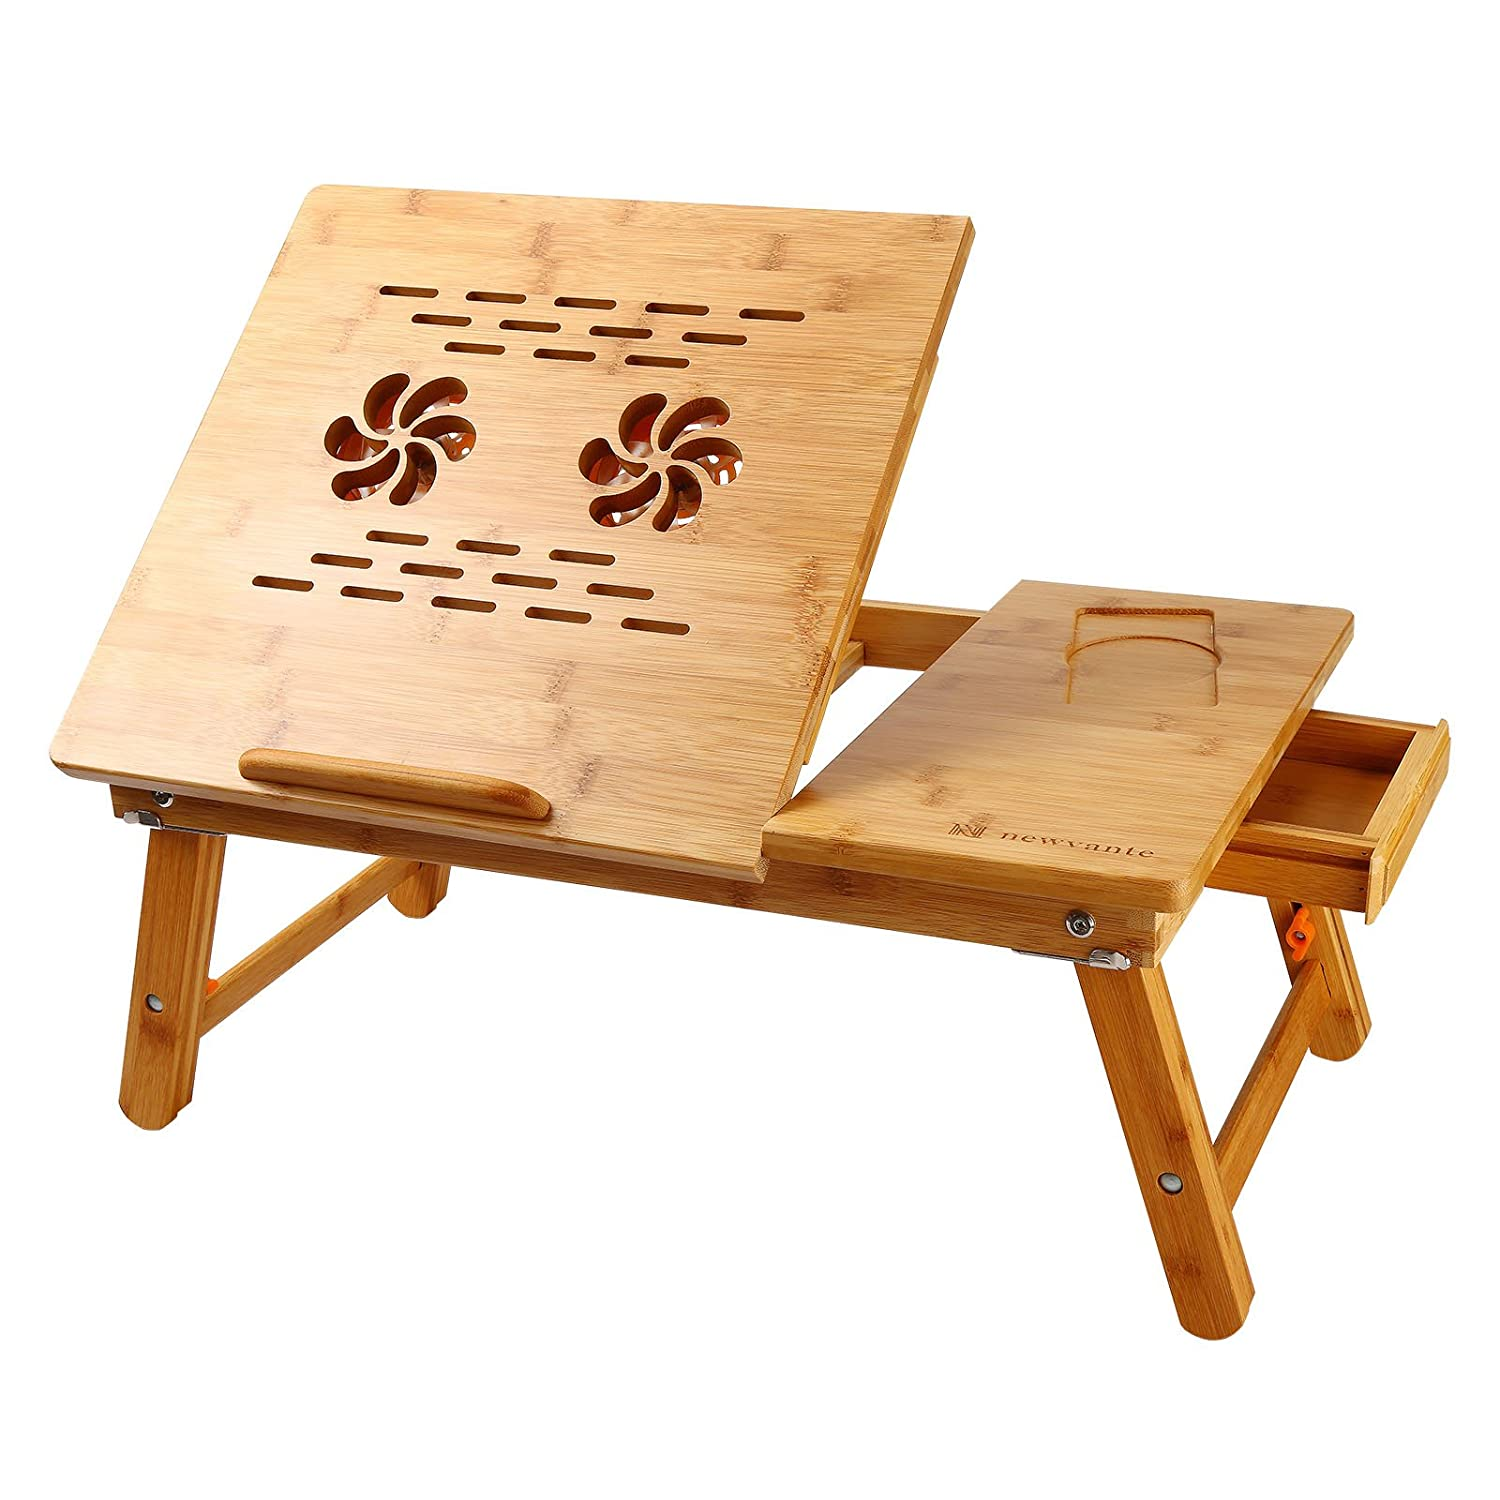 Laptop bed table tray - Laptop Desk Super Top Laptop Table 100 Bamboo Desk Adjustable With Usb Fan2 Foldable Breakfast Serving Bed Tray Drawer